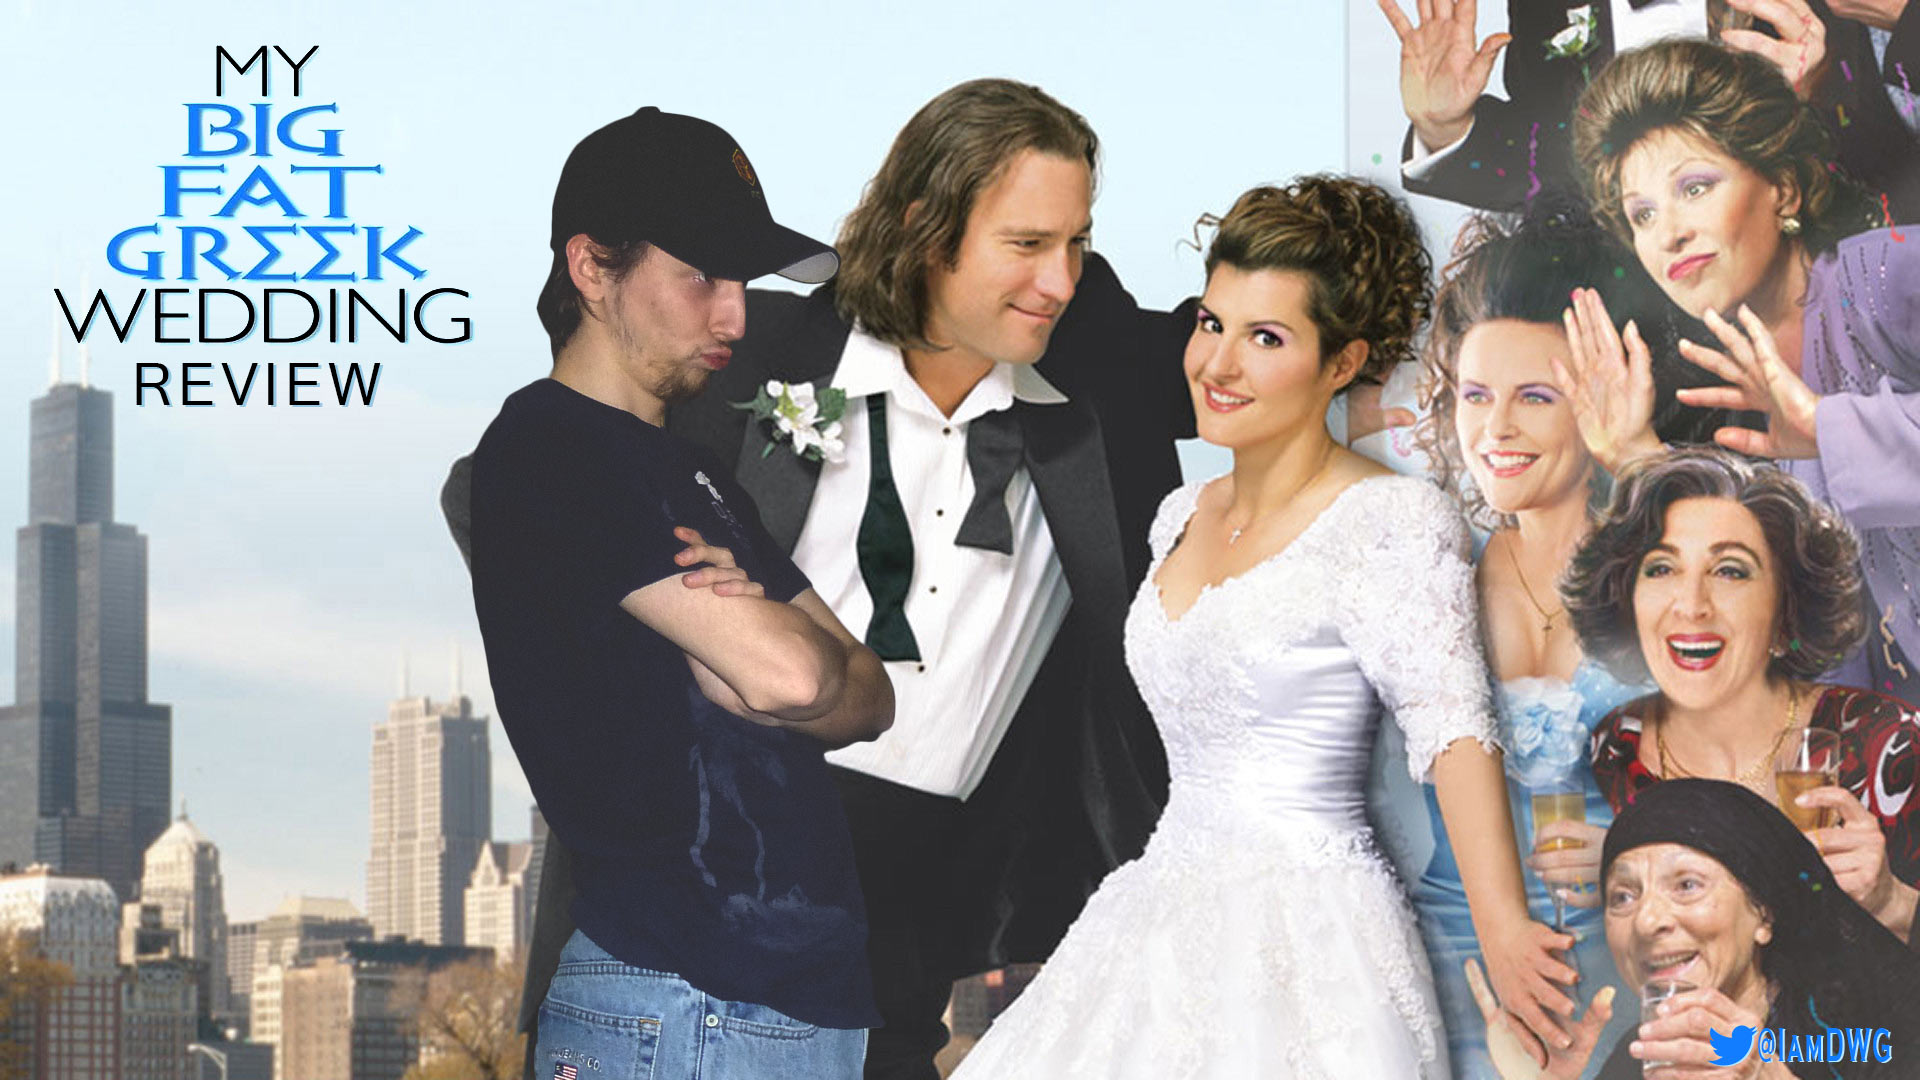 My Big Fat Greek Wedding – Movie Review